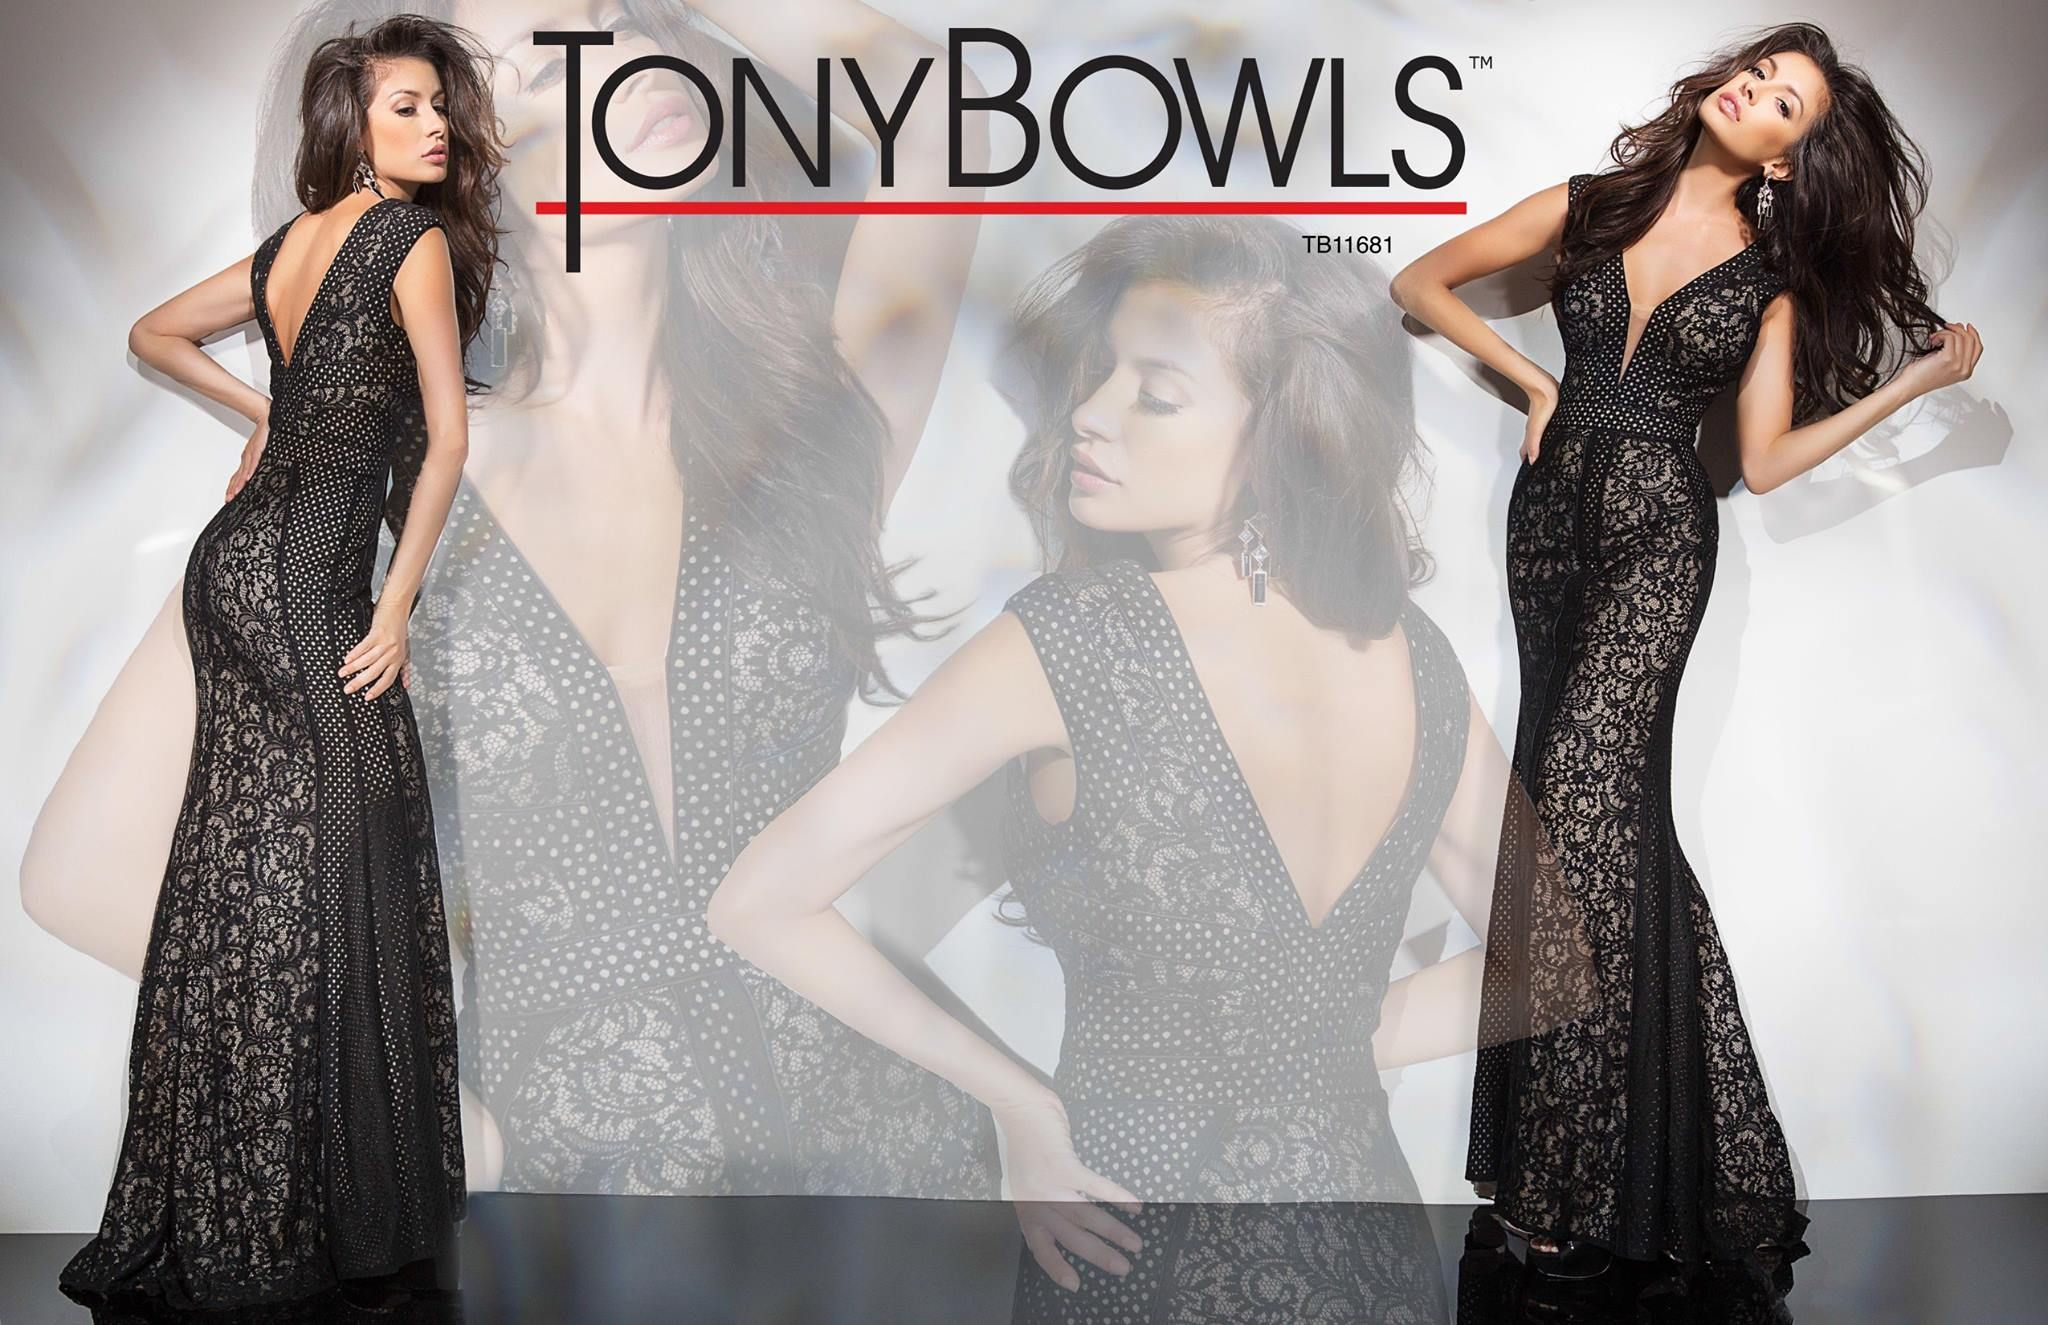 Tony Bowls TB11681 - Black - Size 6 & Royal - Size 12 - Available at Stella's Bridal & Evening Collections